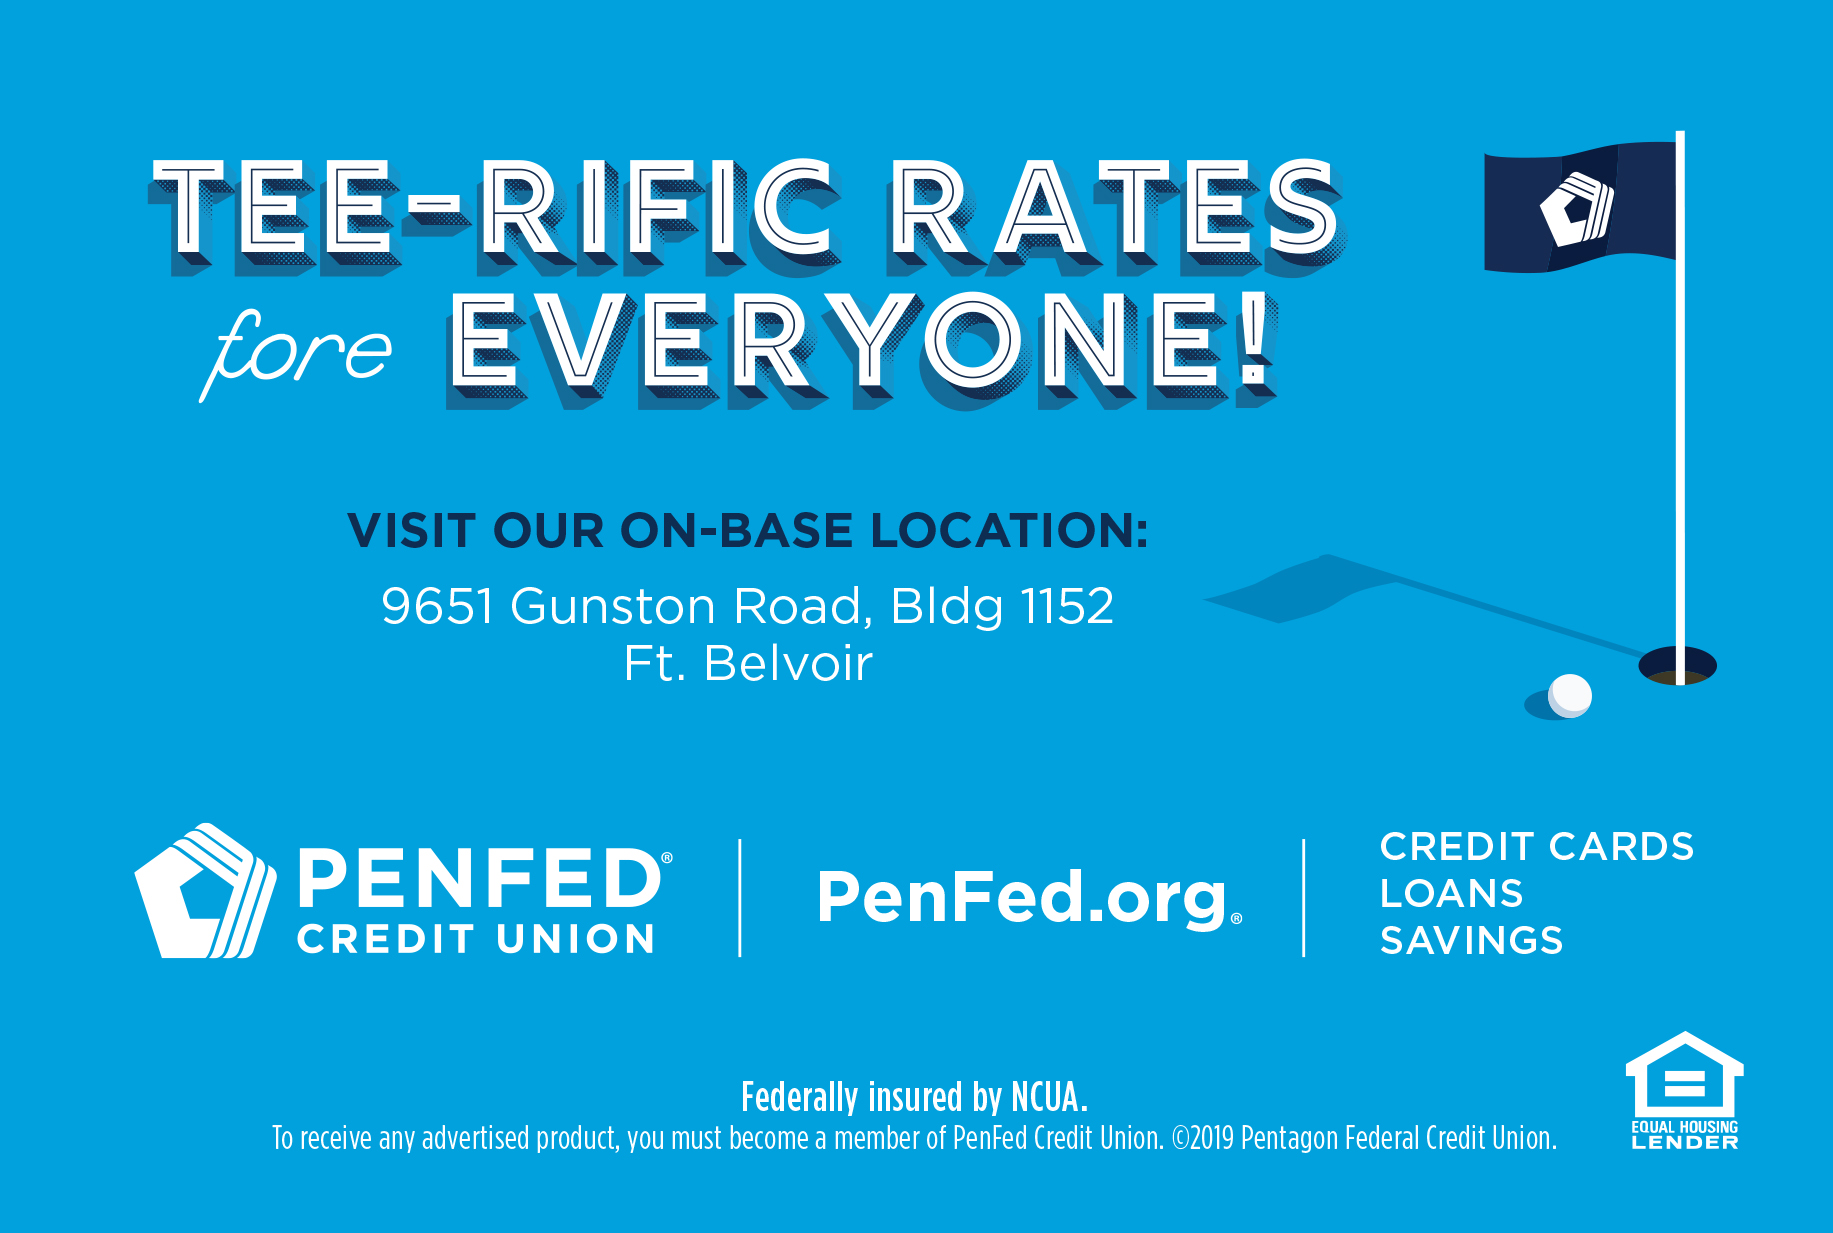 PenFed Credit Union – Tee-Riffic Rates at Fort Belvoir